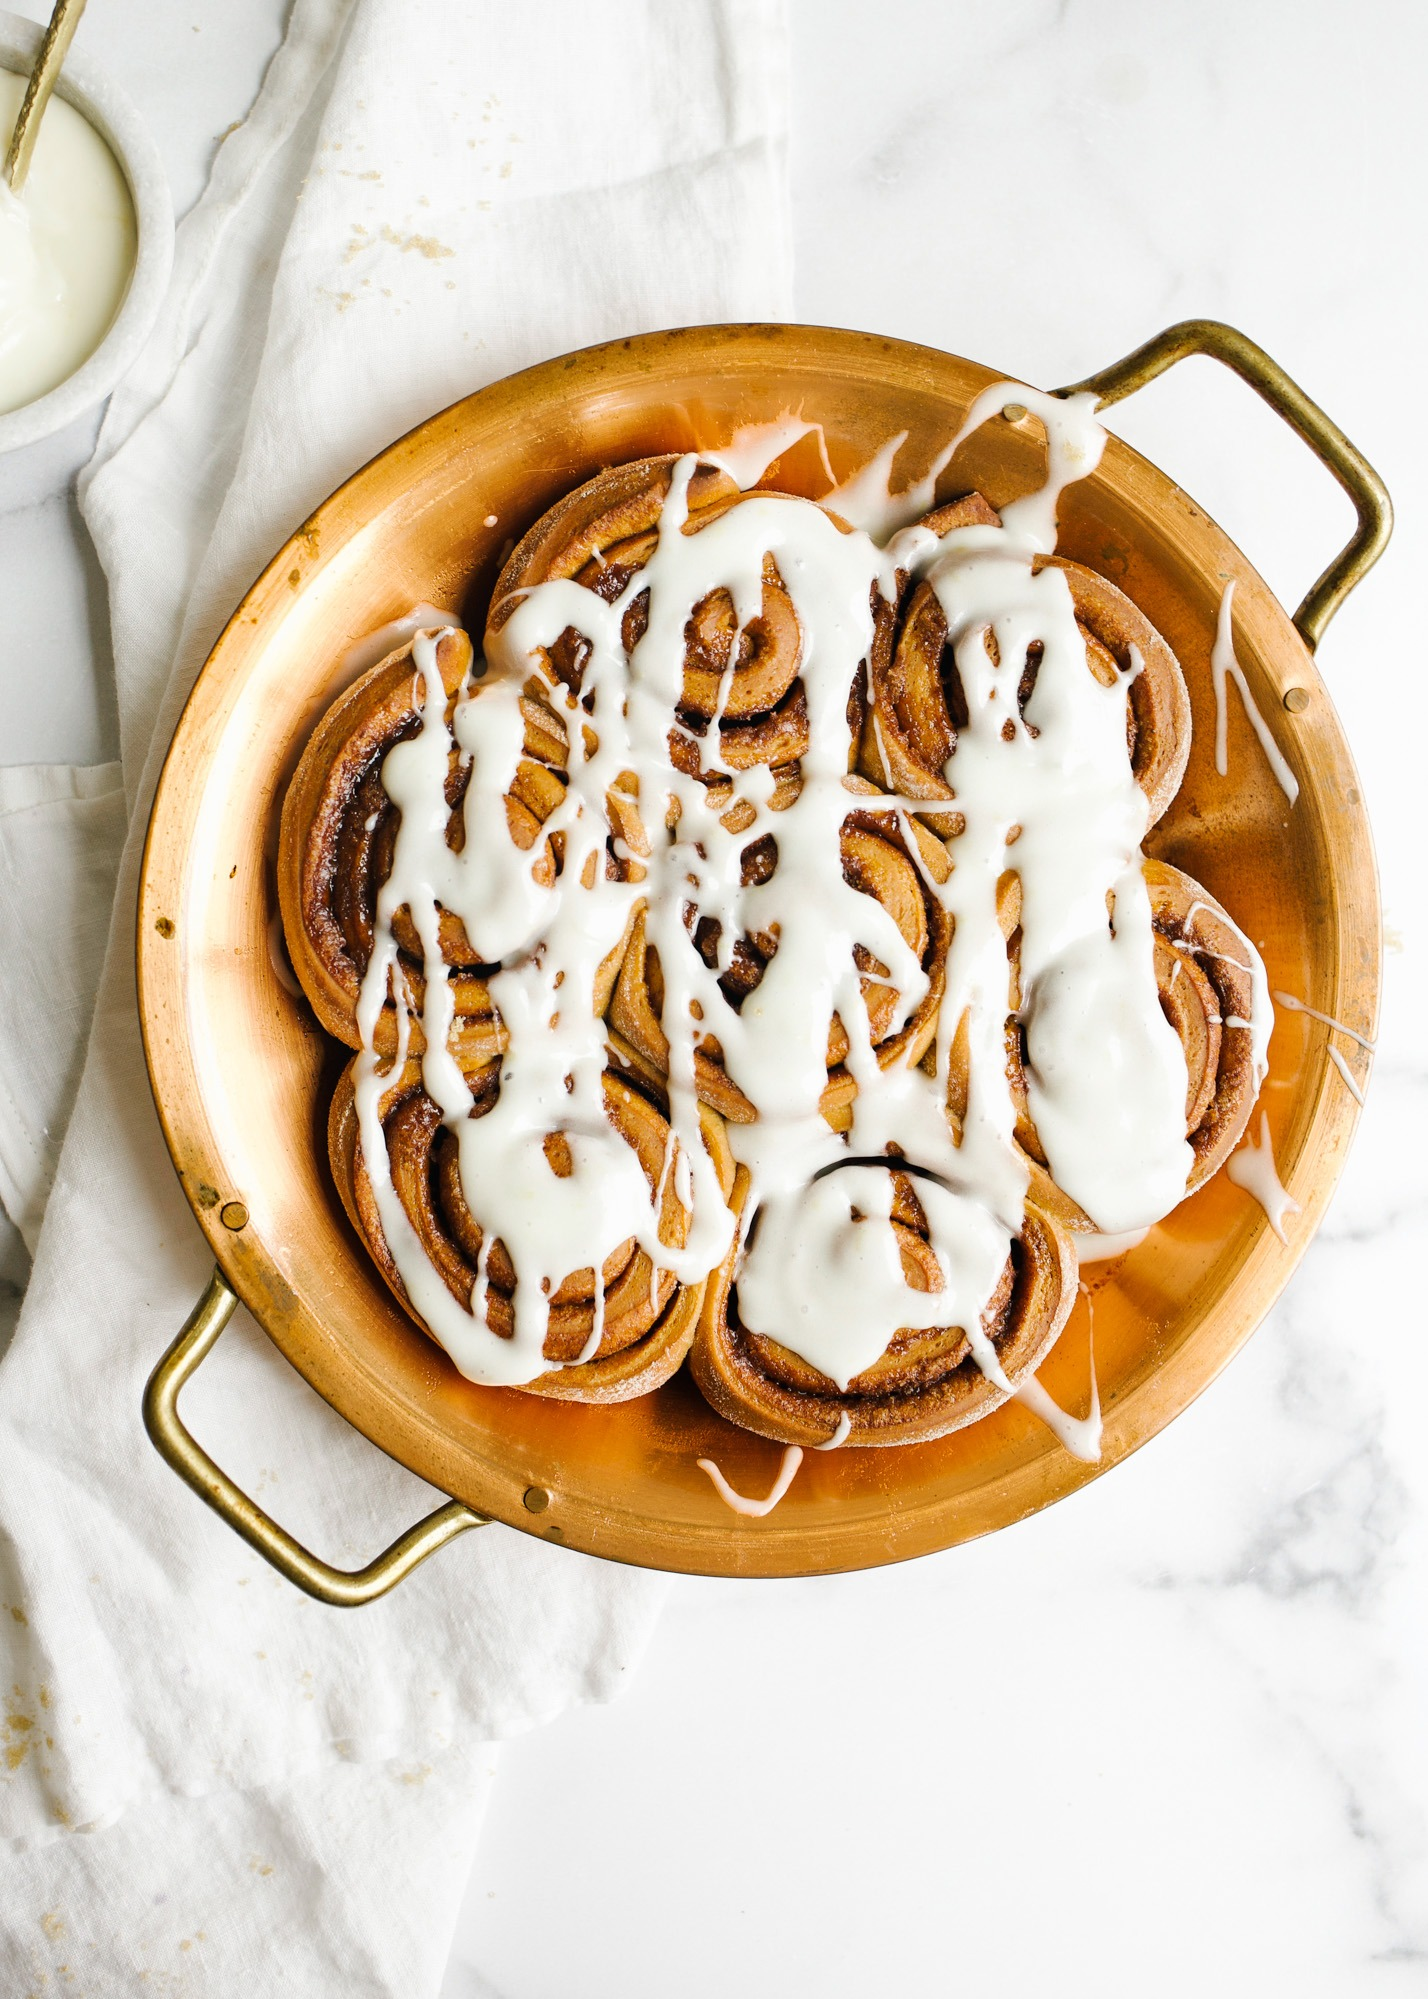 Gingerbread Cinnamon Rolls by Wood and Spoon. This recipe is for holiday spiced morning buns filled with cinnamon, ginger, nutmeg, and other Christmas cookie spices. The recipe can be prepped overnight and made in advance and the whole thing has a tangy lemon cream cheese icing that can be frosted on the fluffy giant rolls. Learn how to roll the cookies and find out more about this recipe on thewoodandspoon.com by Kate Wood.